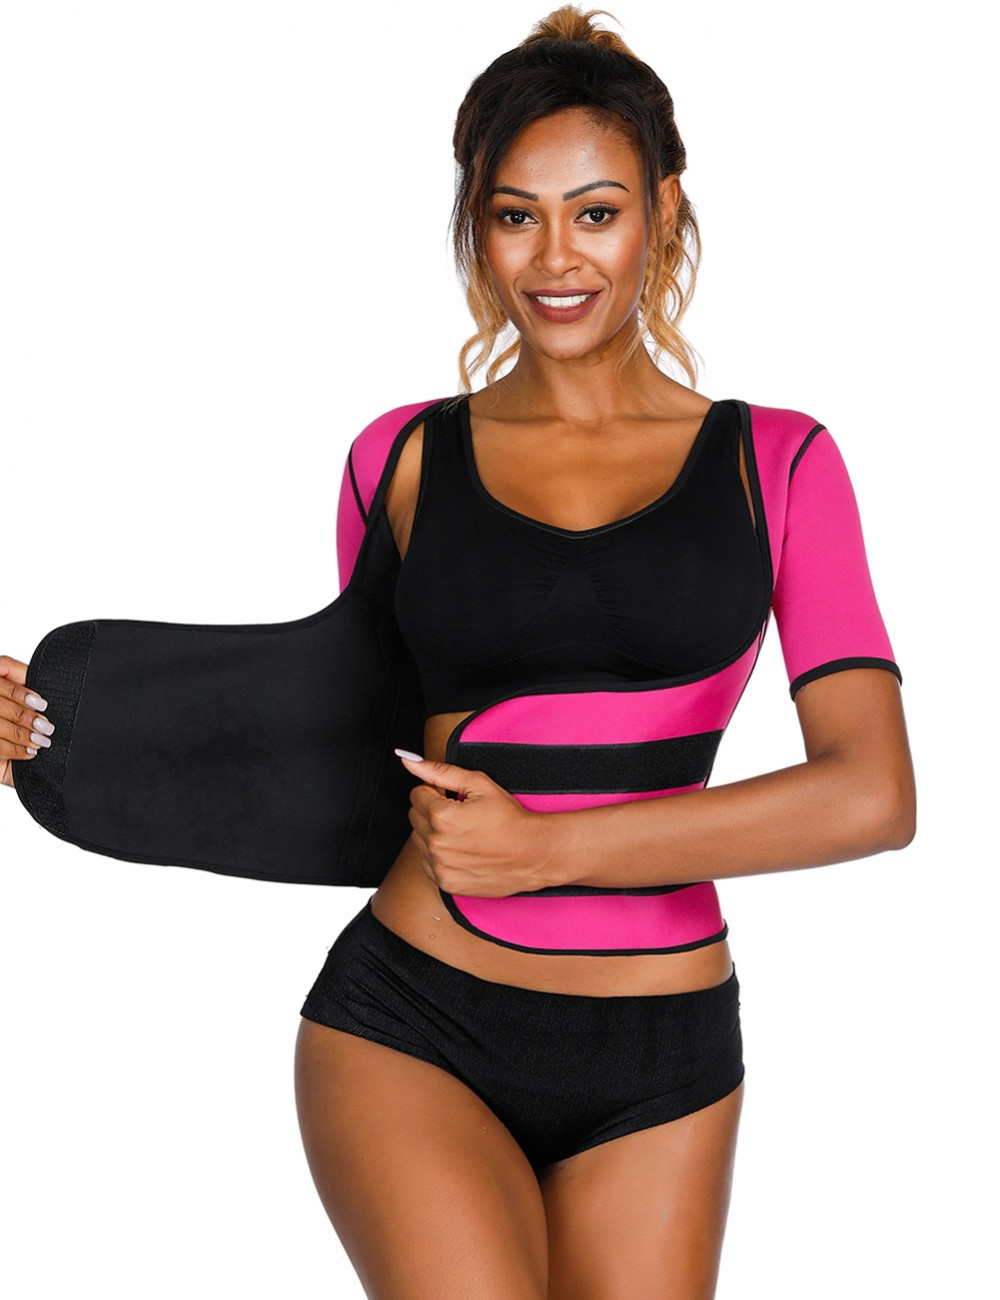 Stretch Rose Red Queen Size Neoprene Shaper Short Sleeves Firm Control